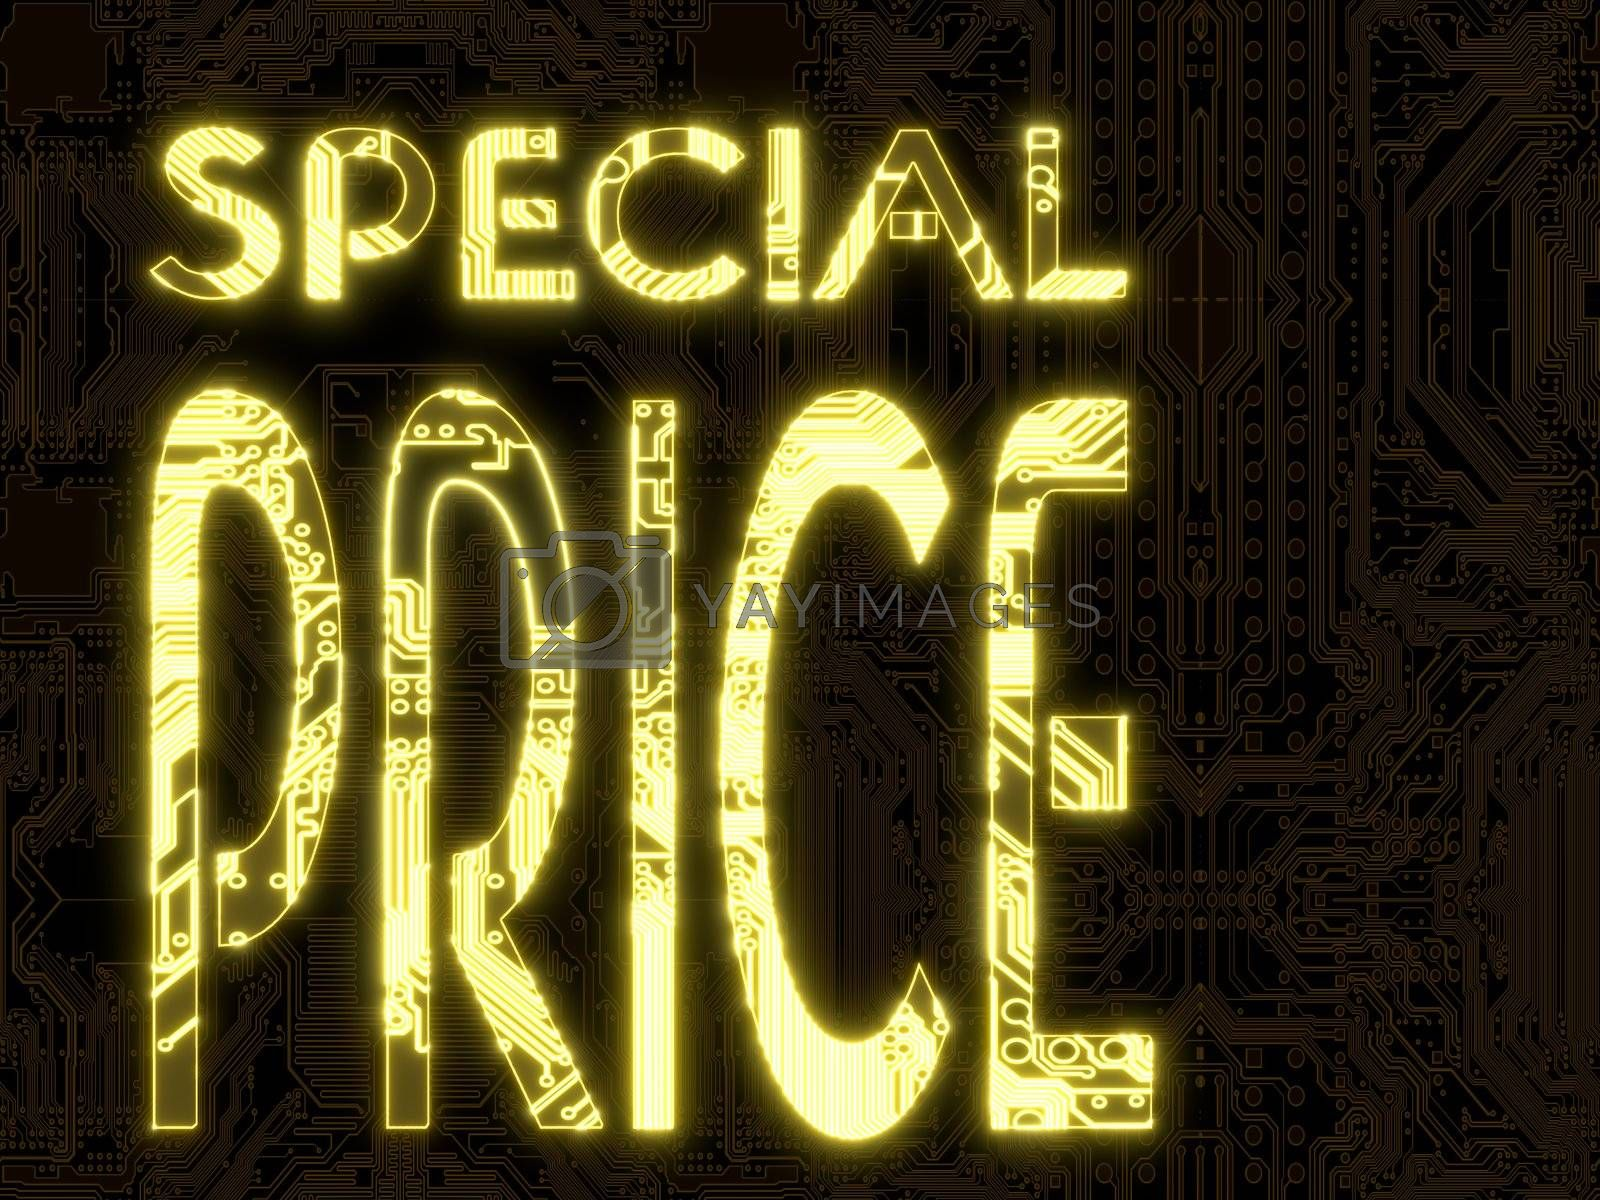 3D Graphic flare computer special price symbol in a dark background